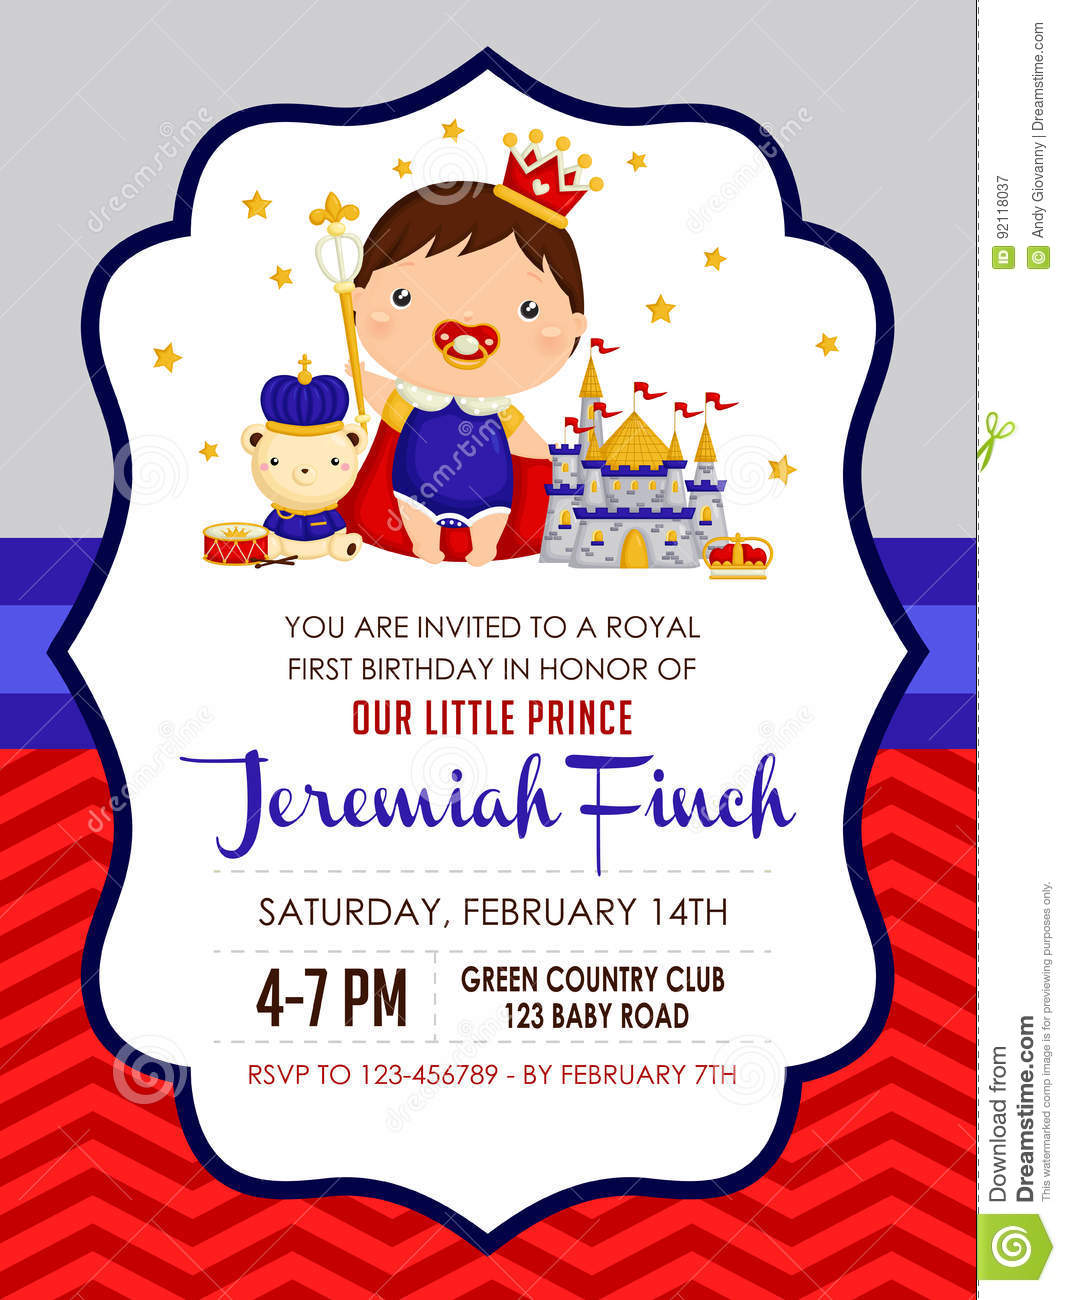 Baby Prince Birthday Invitation Stock Vector - Illustration of gold ...